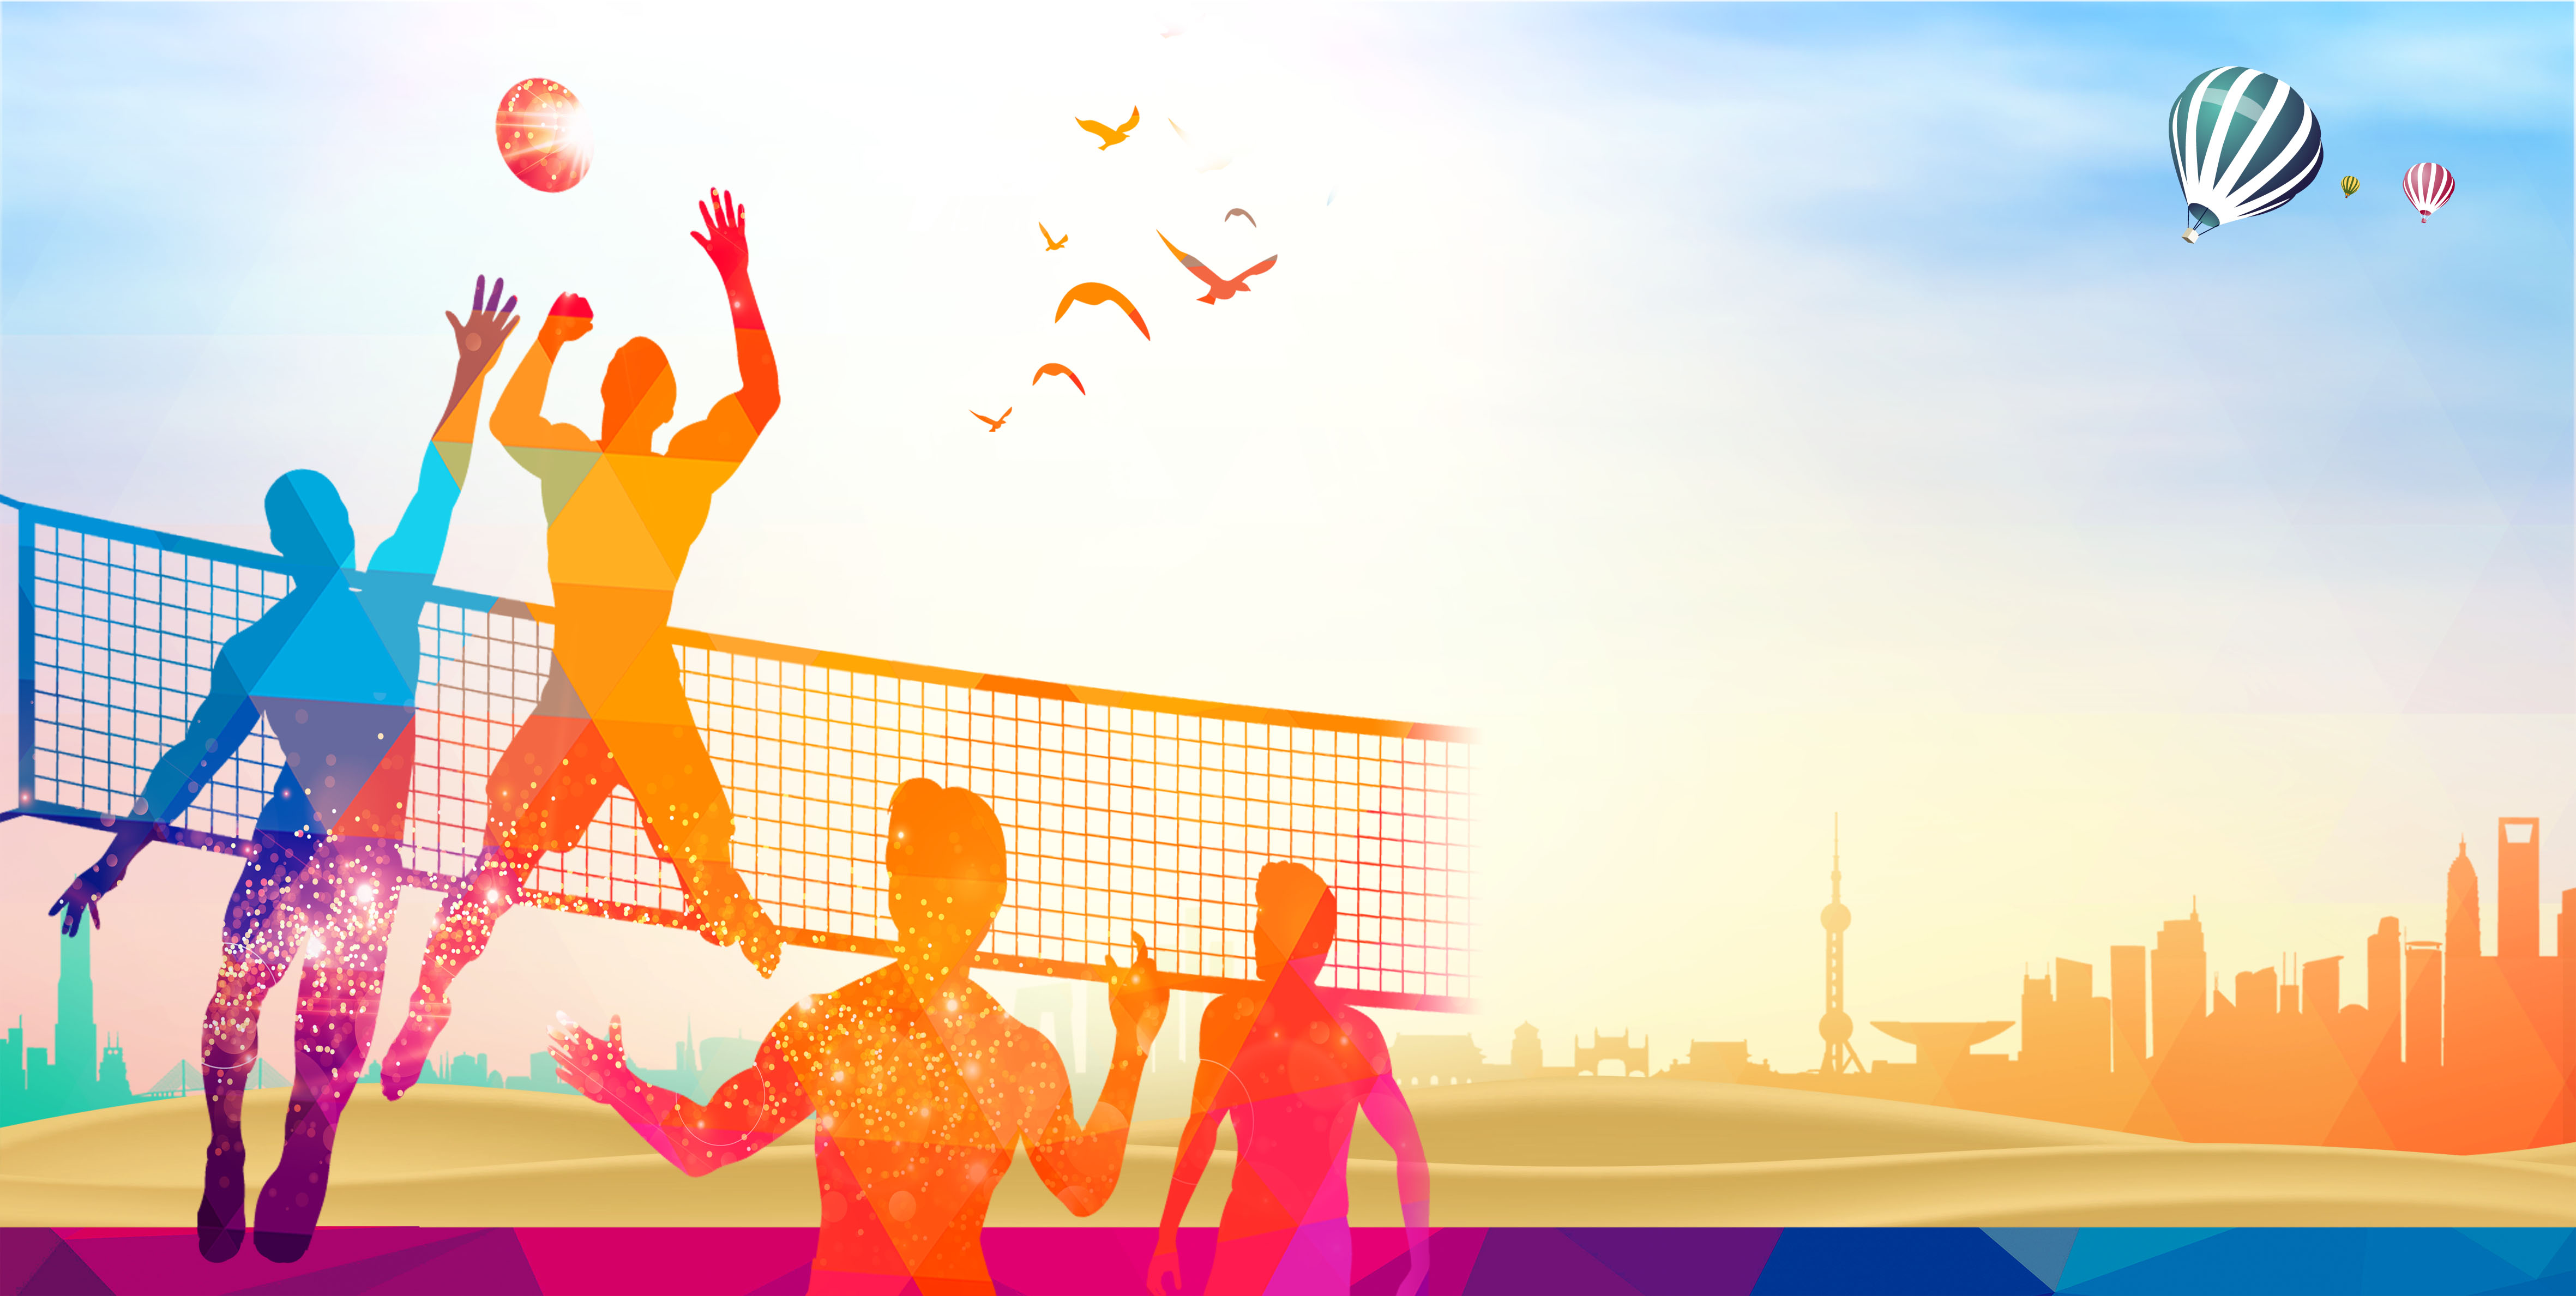 Sport Background Photos Sport Background Vectors and PSD Files 4724x2377